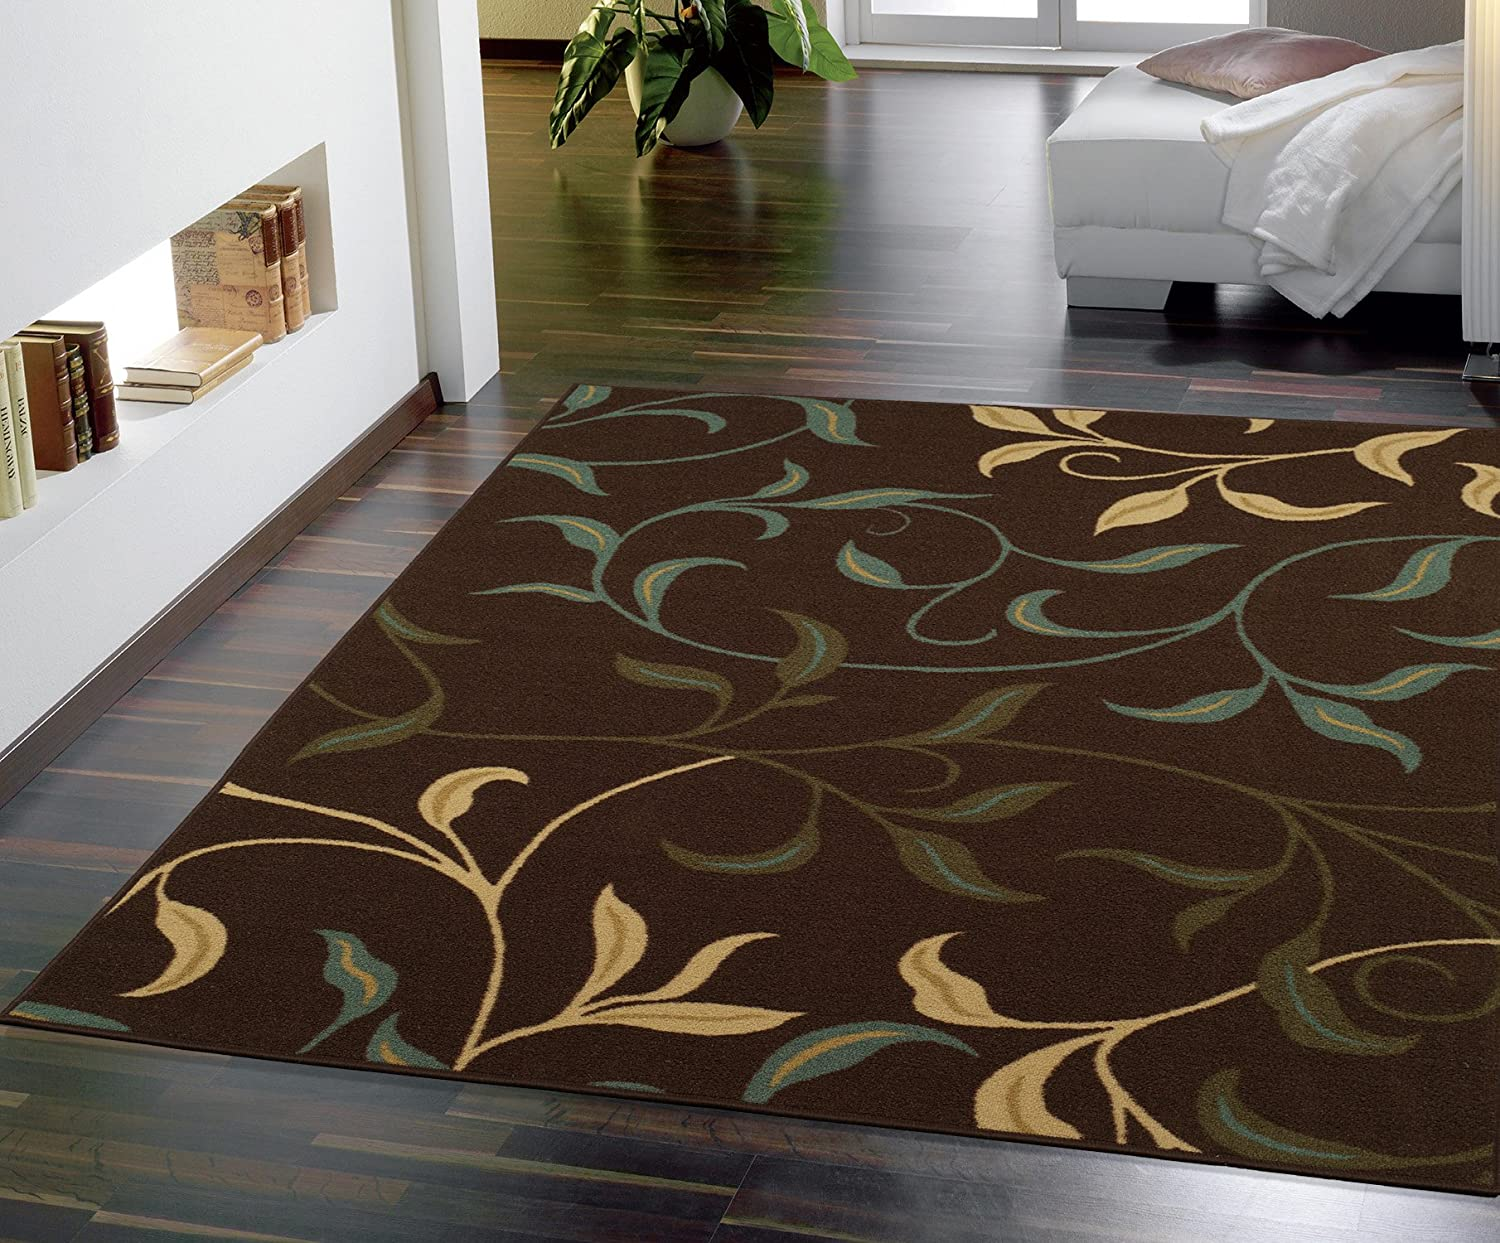 Ottomanson Ottohome Collection Contemporary Leaves Design Non-Skid Rubber Backing Modern Area Rug Chocolate Brown